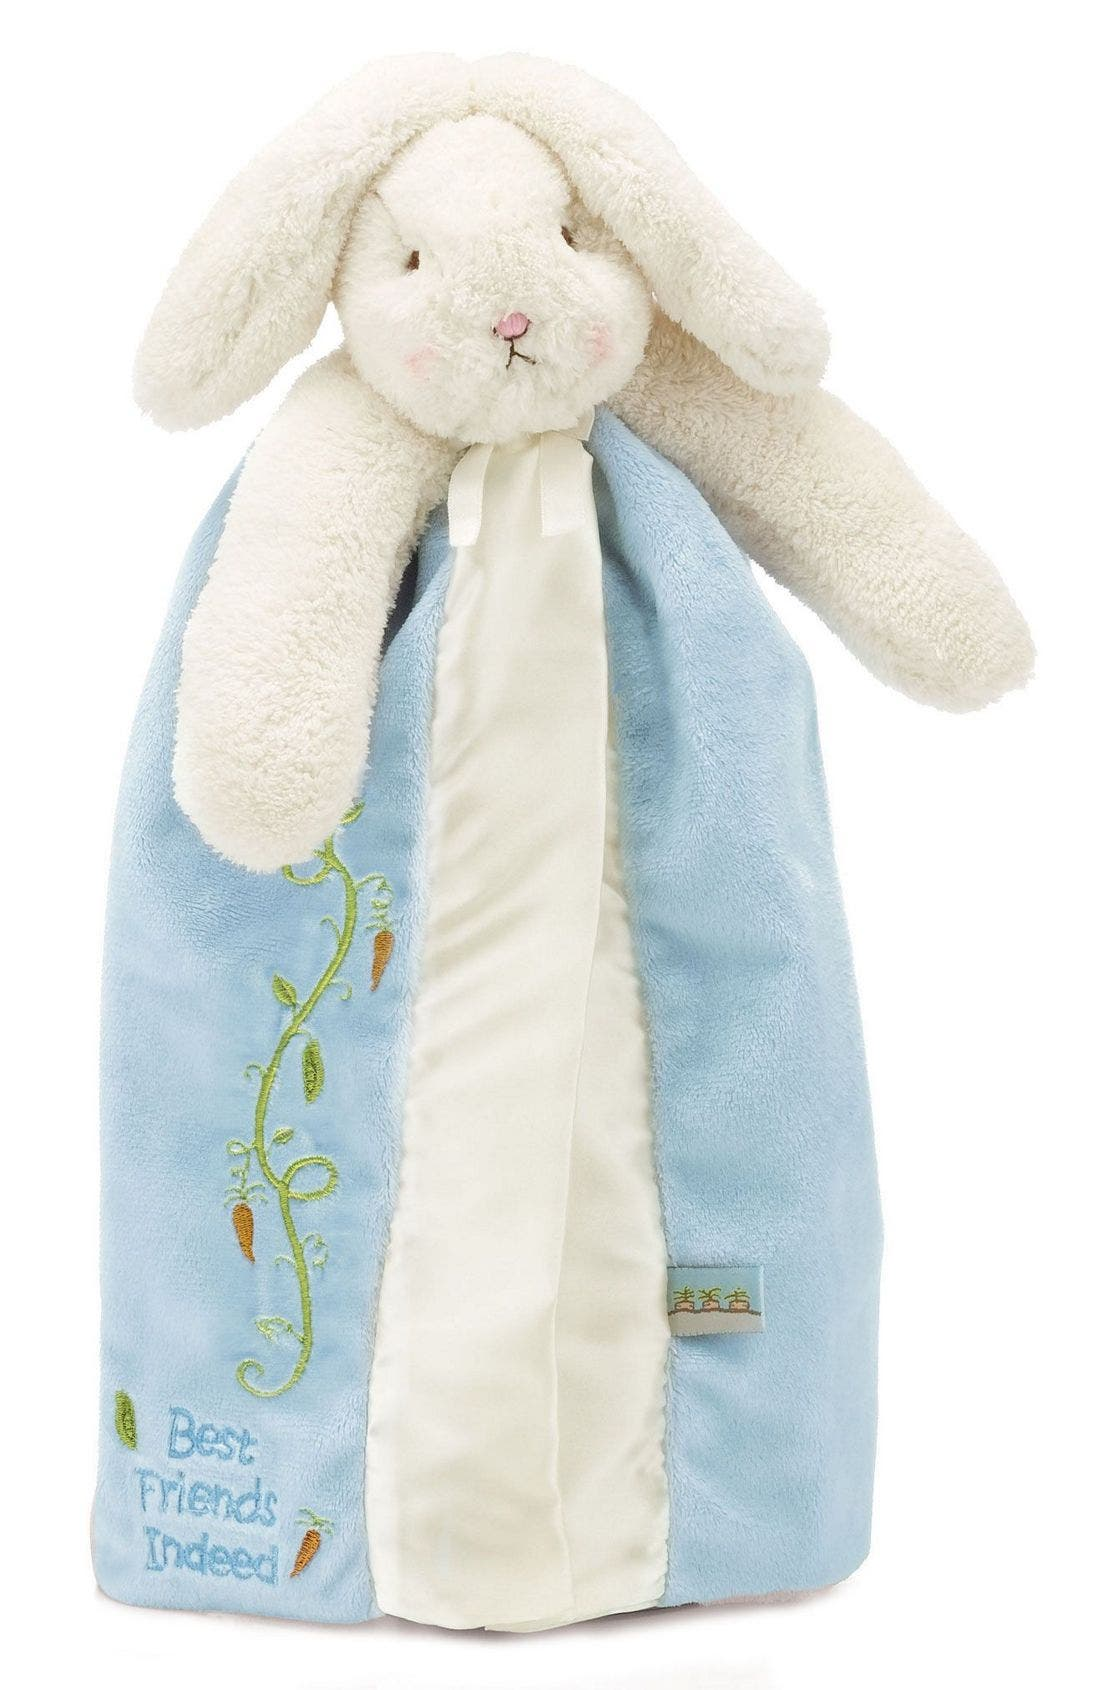 Alternate Image 1 Selected - Bunnies by the Bay Buddy Blanket